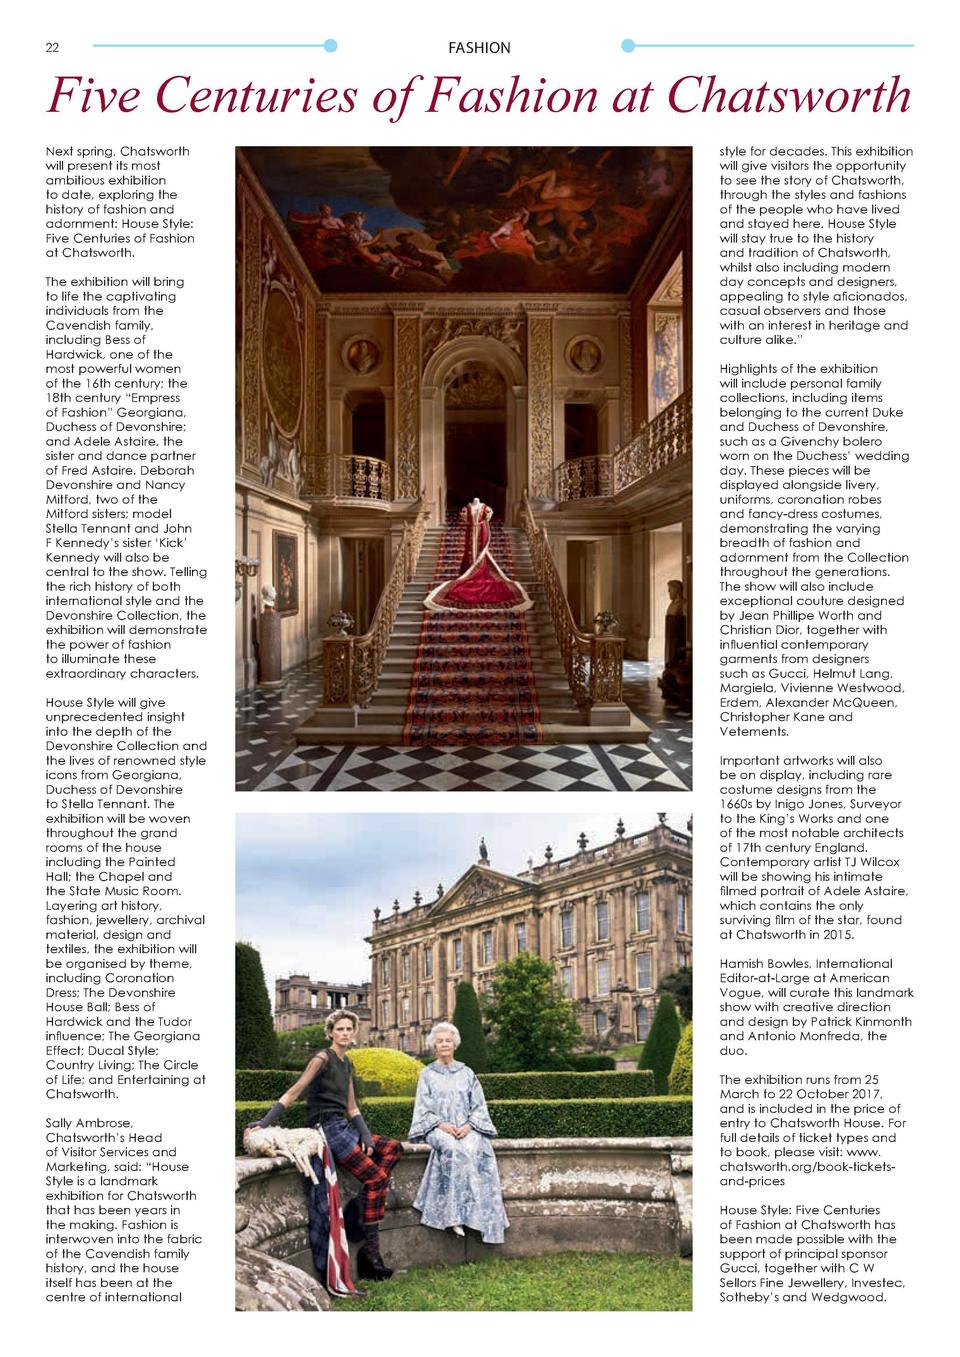 FASHION  FASHION  Five Centuries of Fashion at Chatsworth  It   s all about Getting Groovy and spreading  essielove this w...